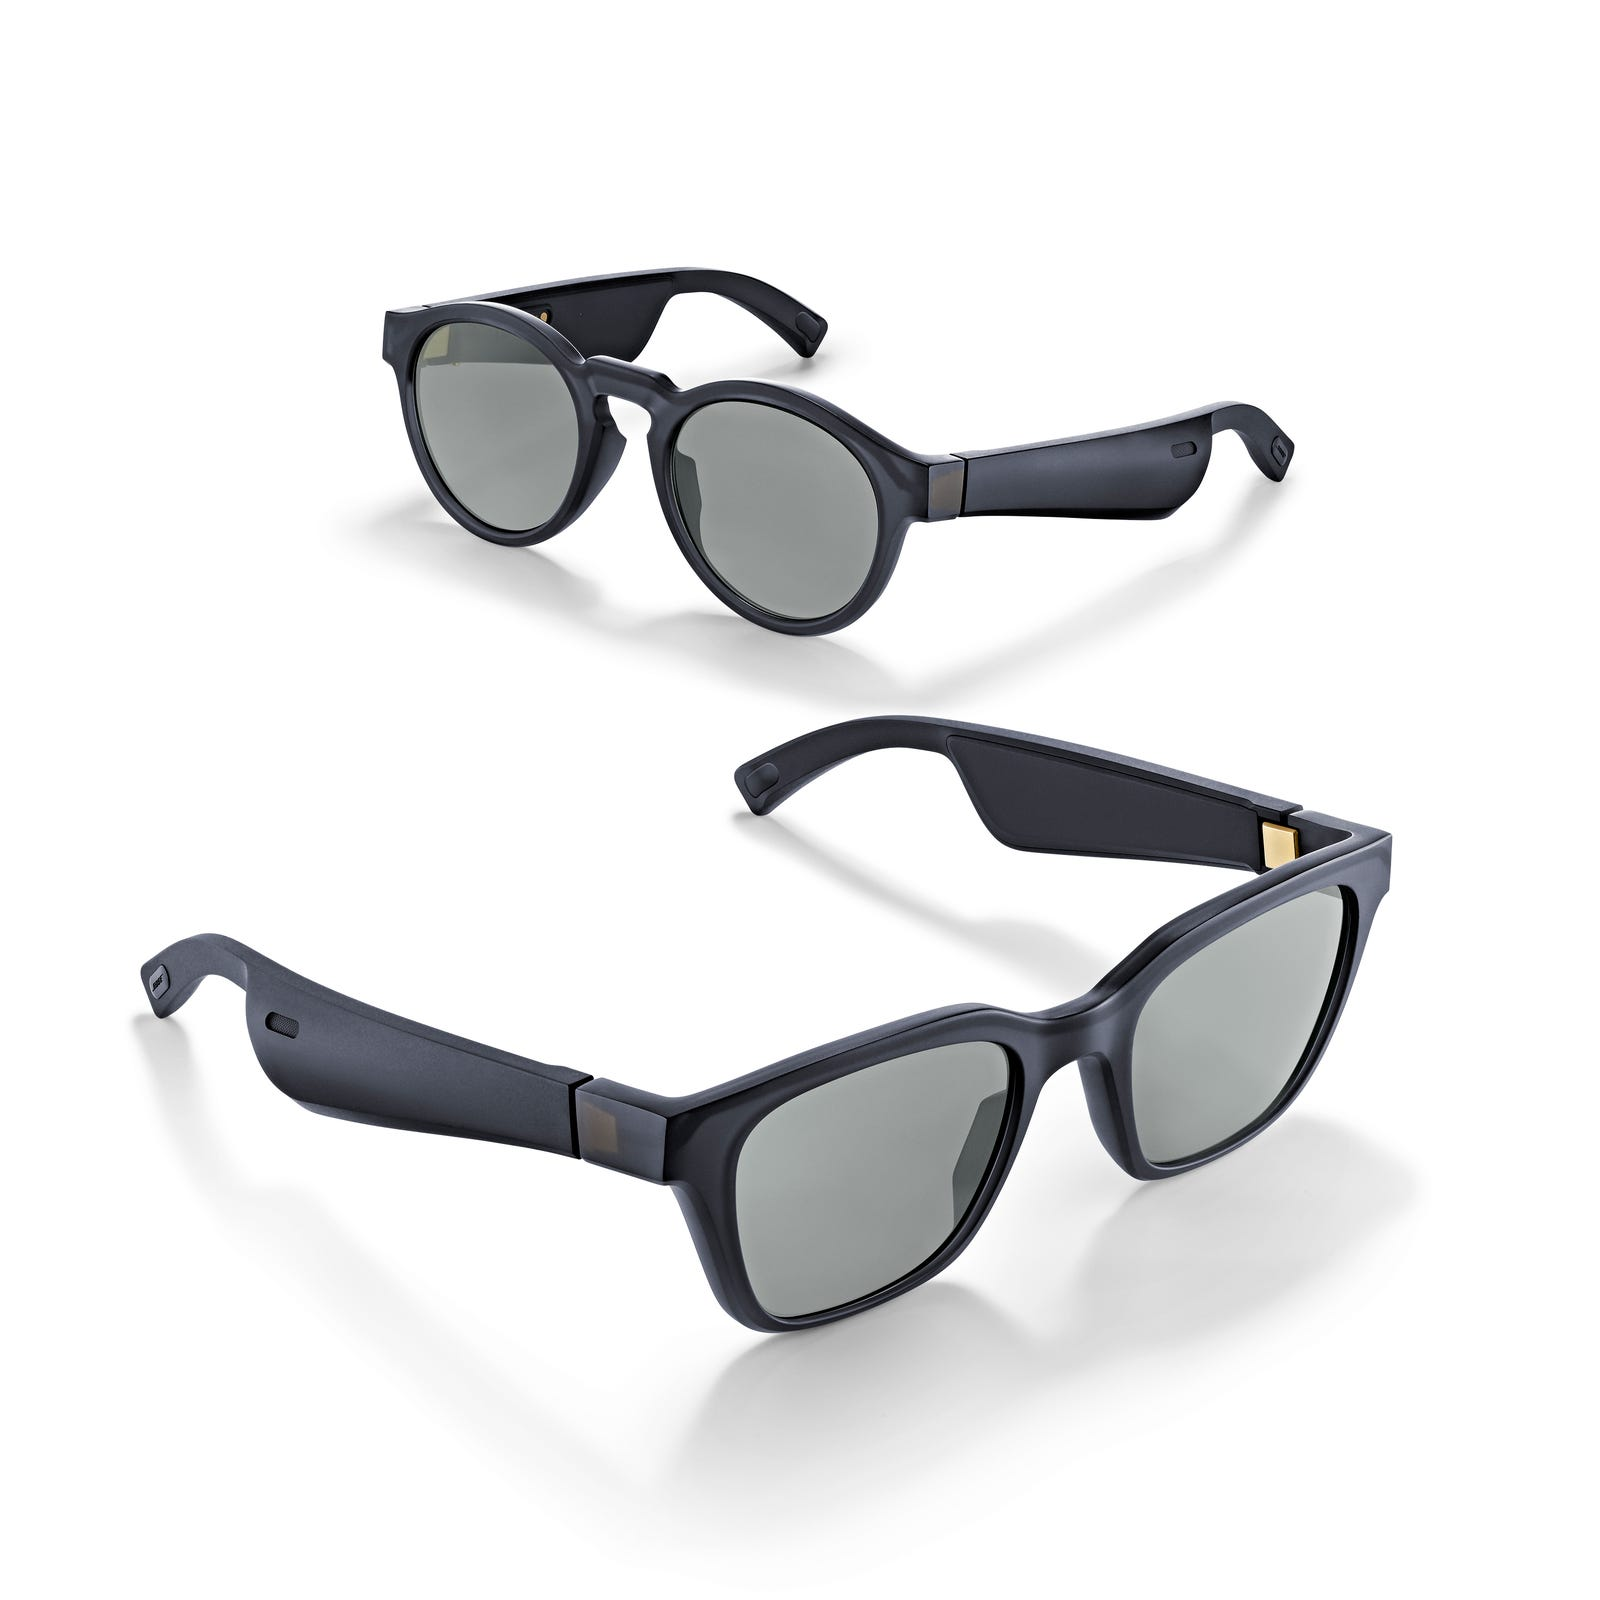 41af2225cf Bose Actually Turned Its Funky Sunglasses Headphones Concept Into a ...